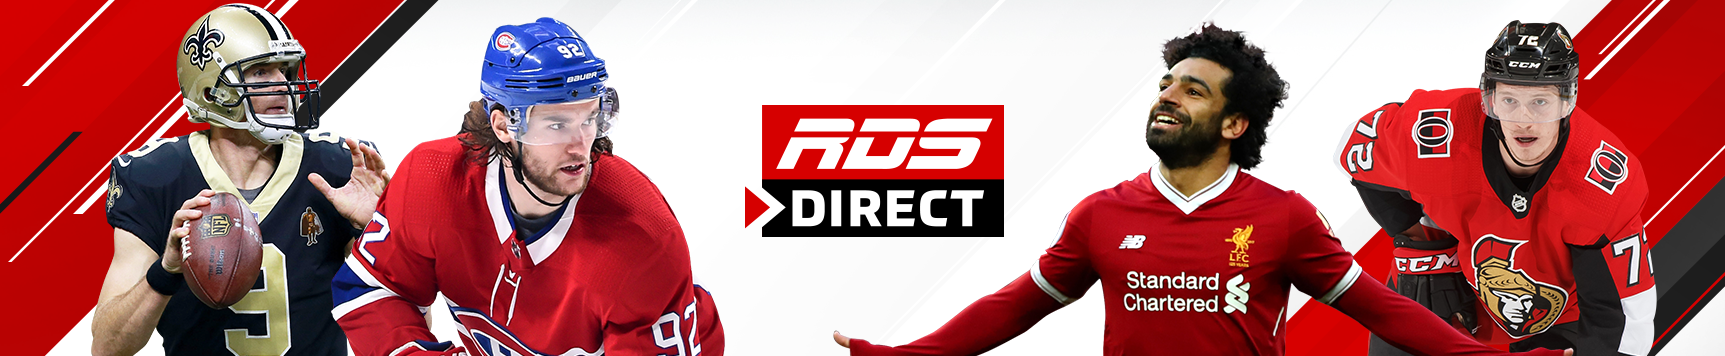 rds-direct